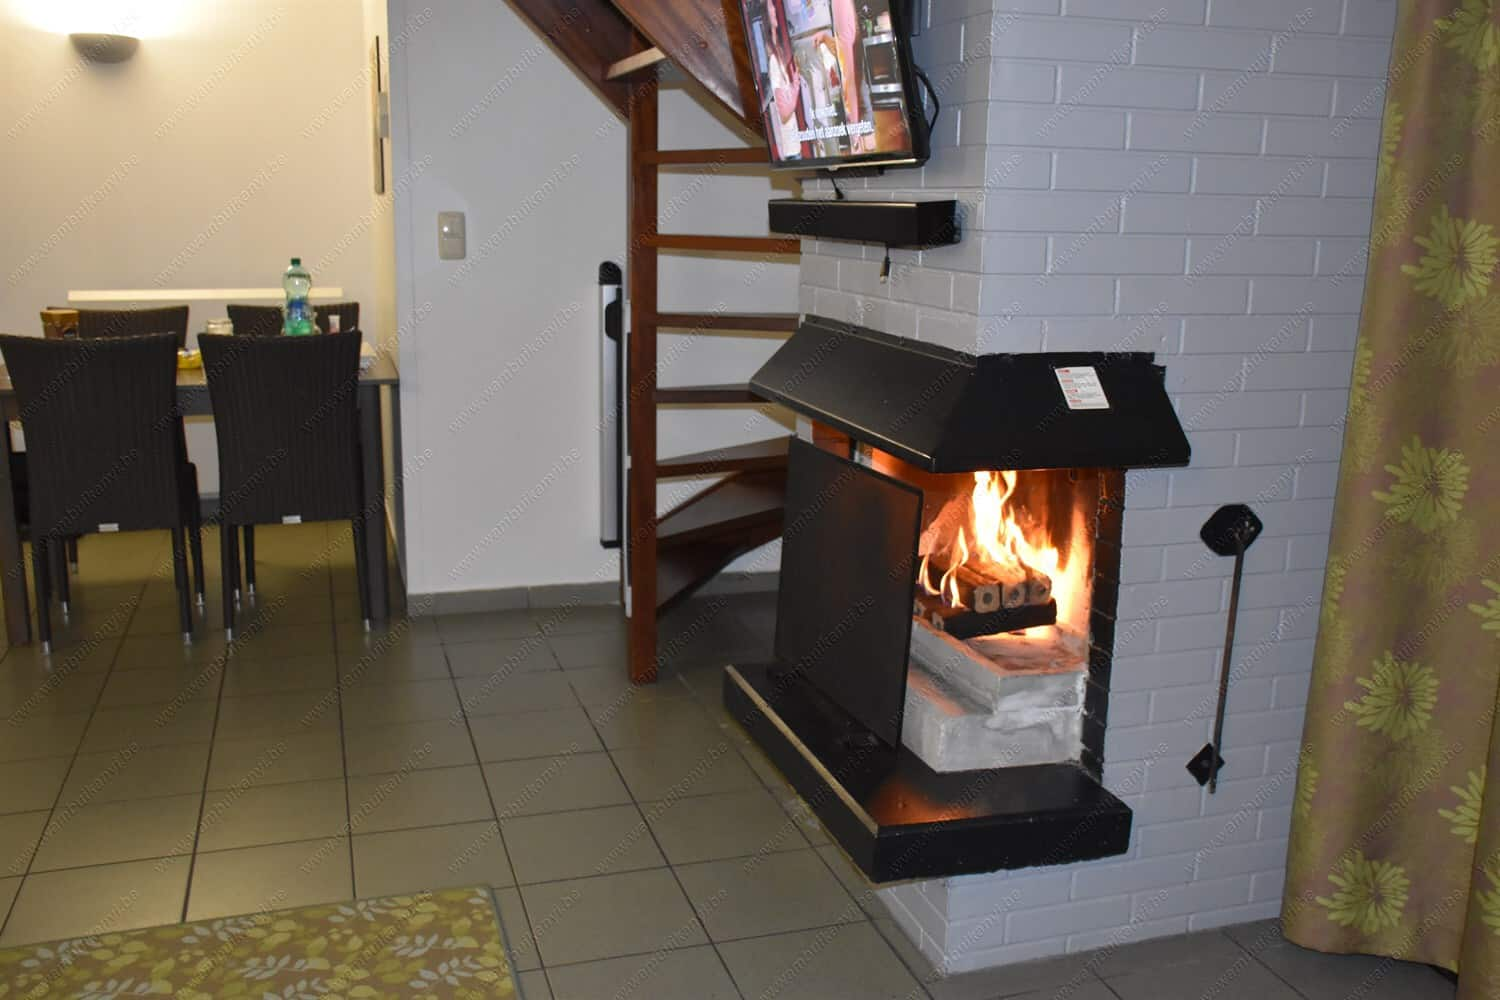 Fire place at the Sunparks in Belgium